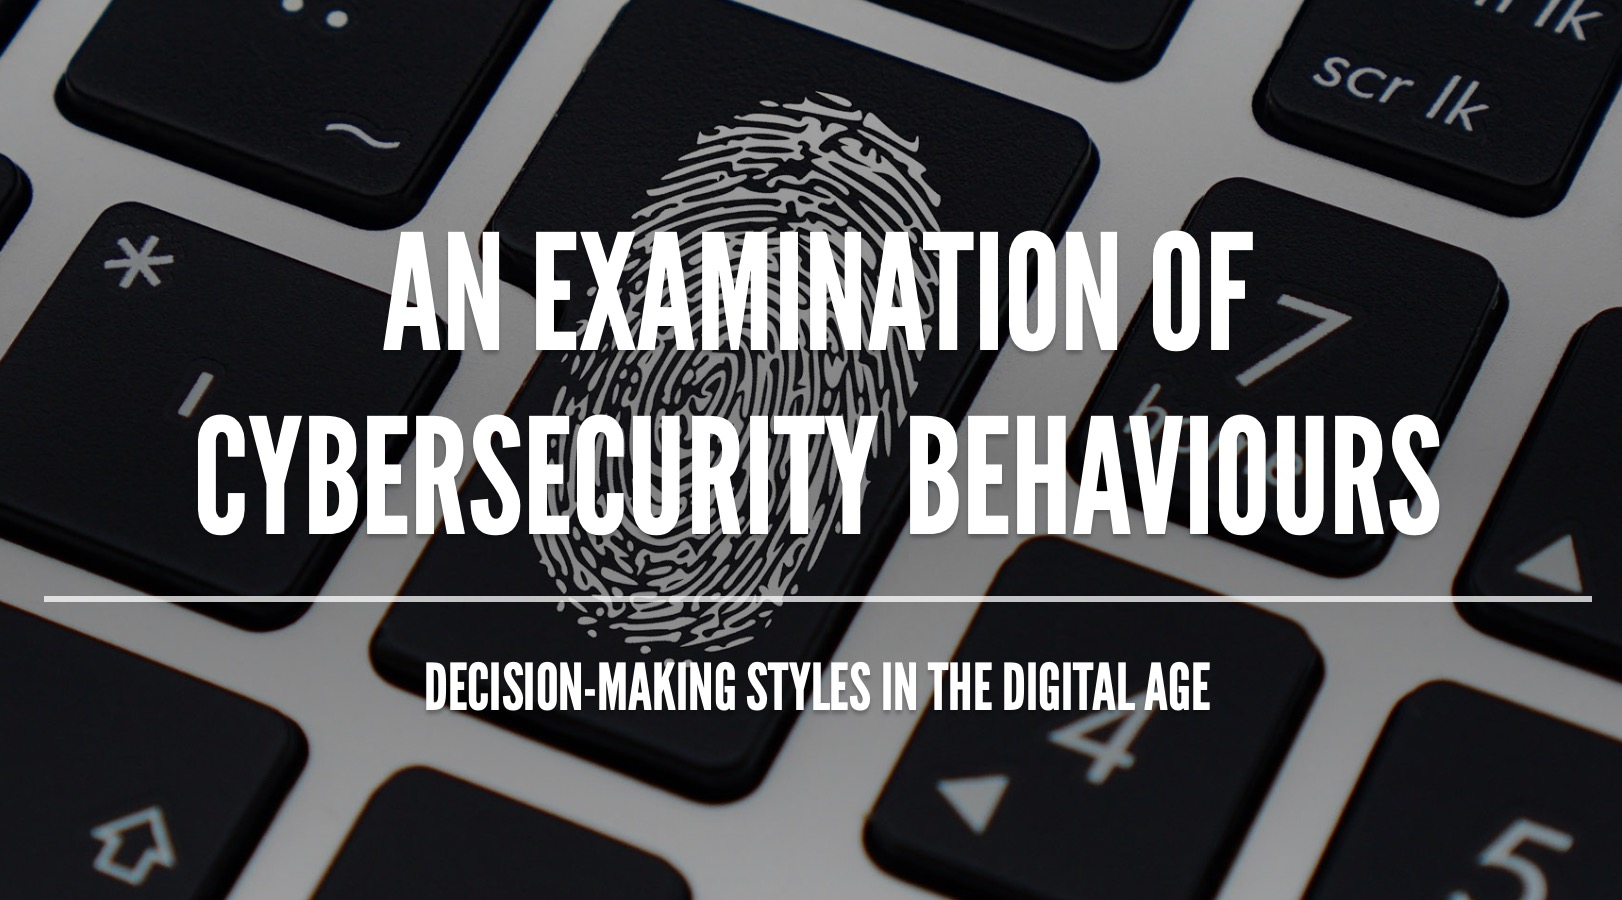 An Examination of Cybersecurity Behaviours: Decision-Making Styles in the Digital Age